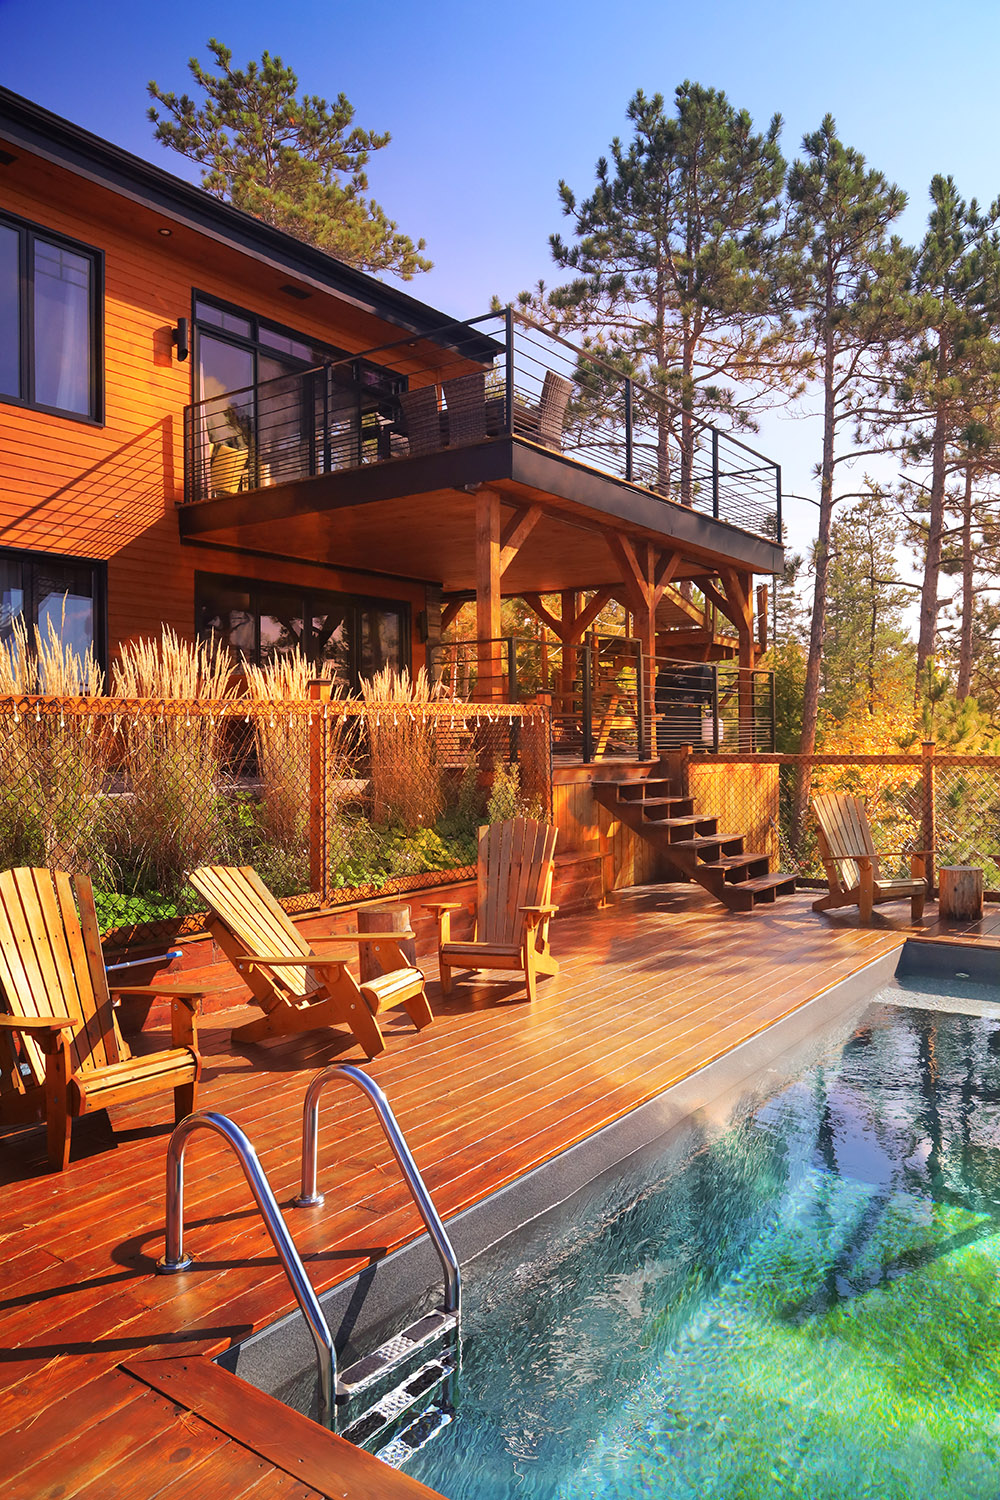 Colorful Stylish House with Pool in the Woods